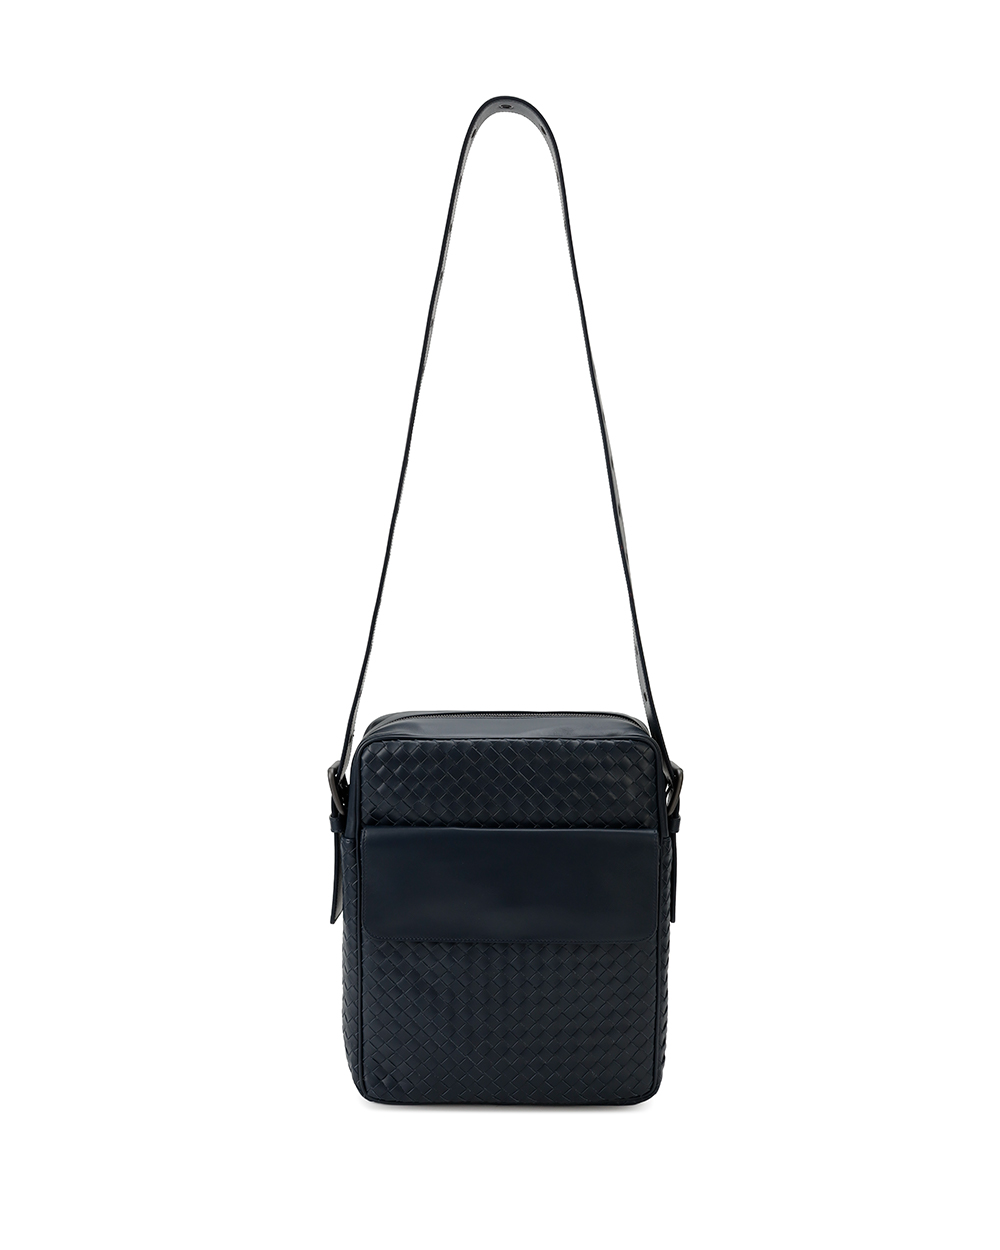 Woven Leather Crossbody Bag 1